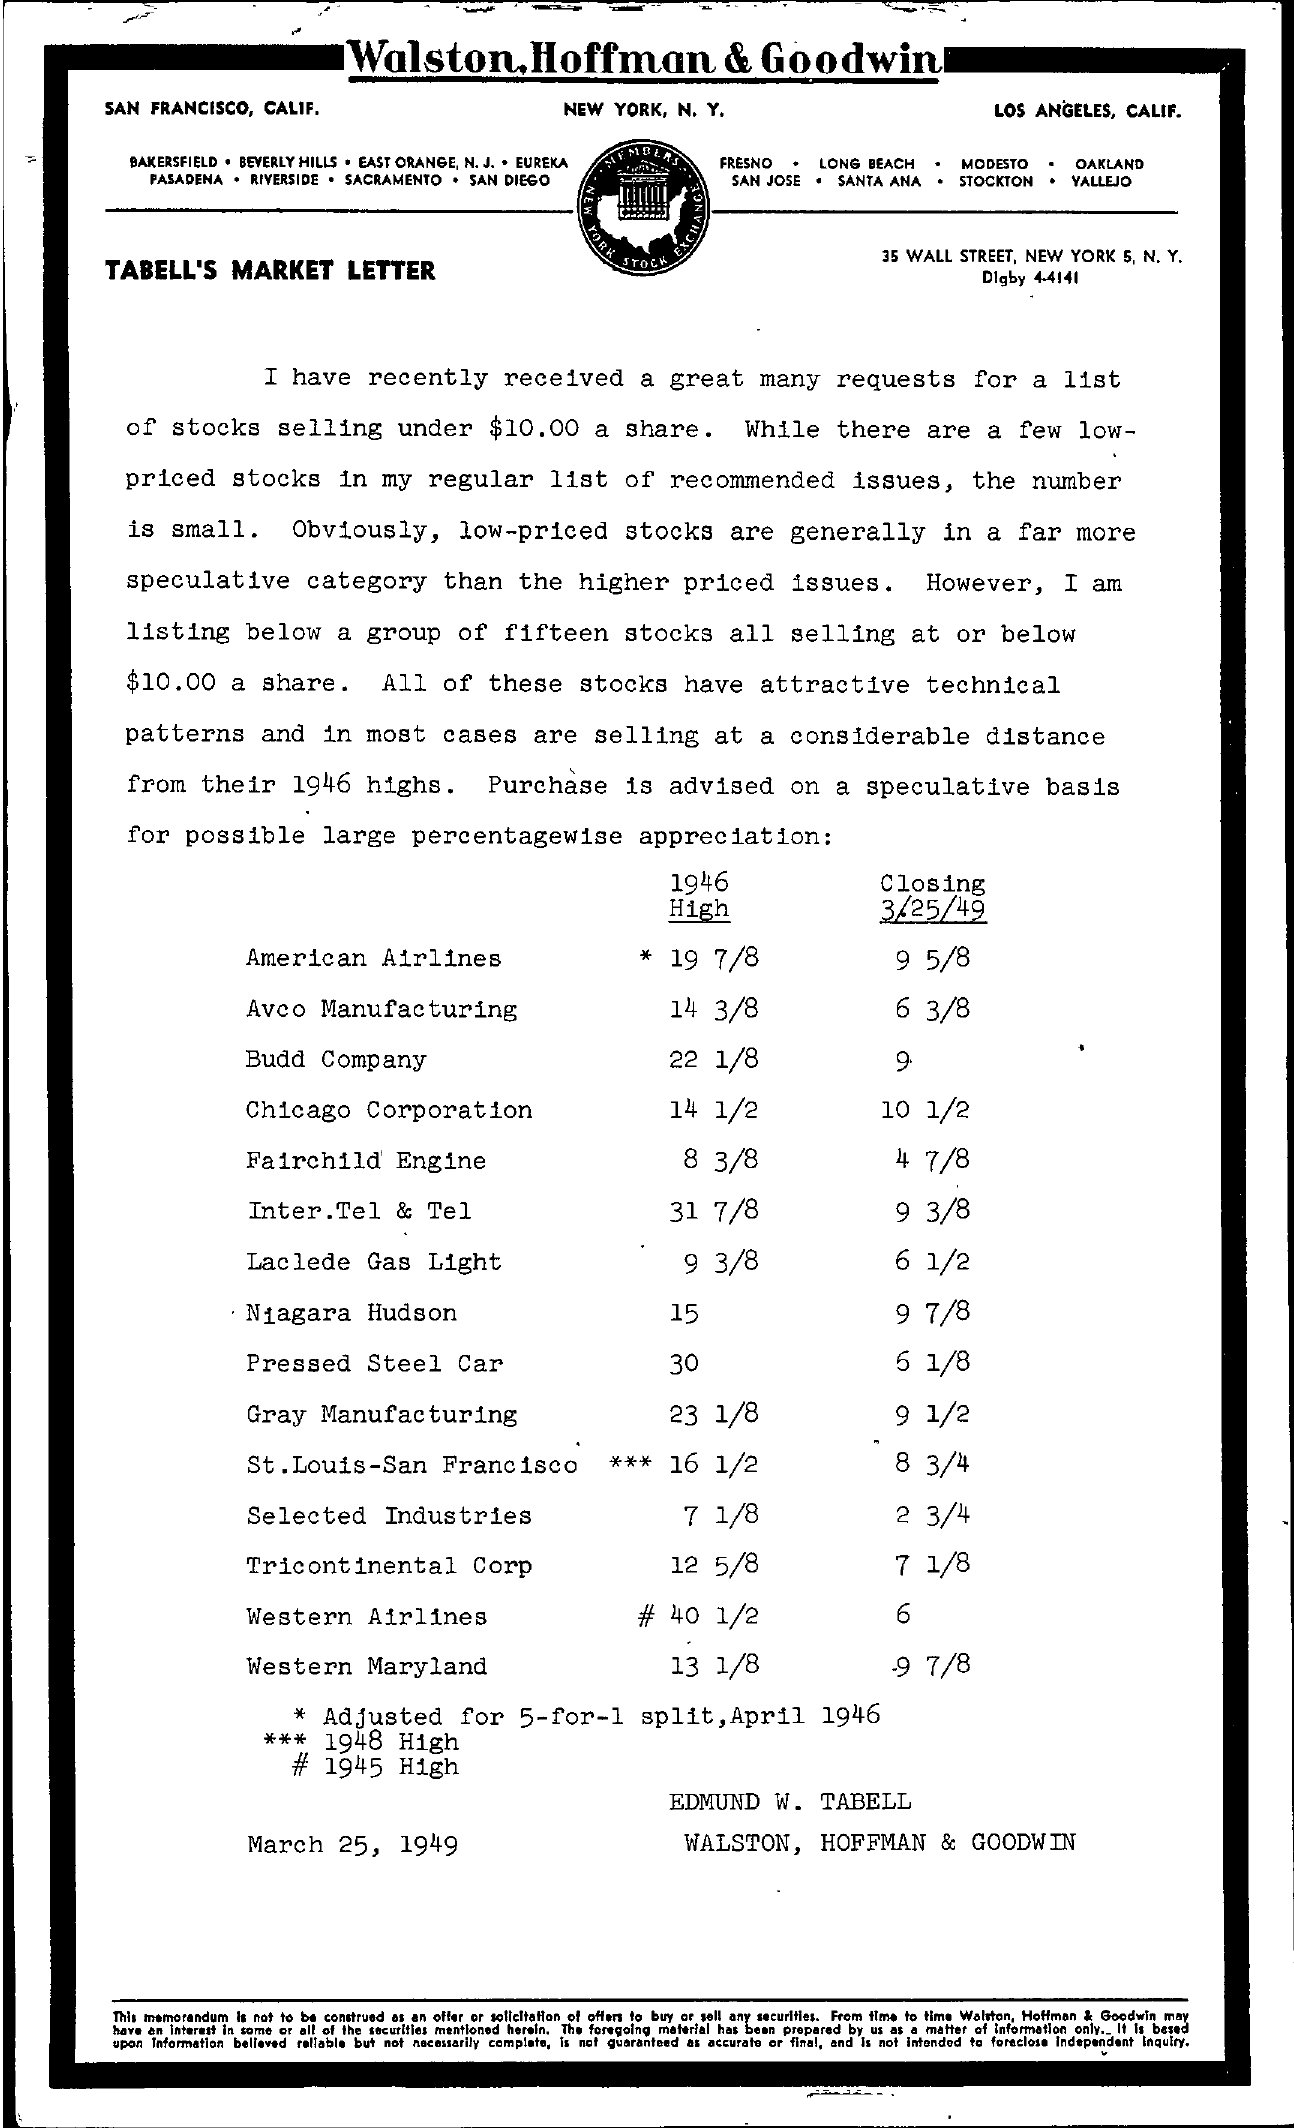 Tabell's Market Letter - March 25, 1949